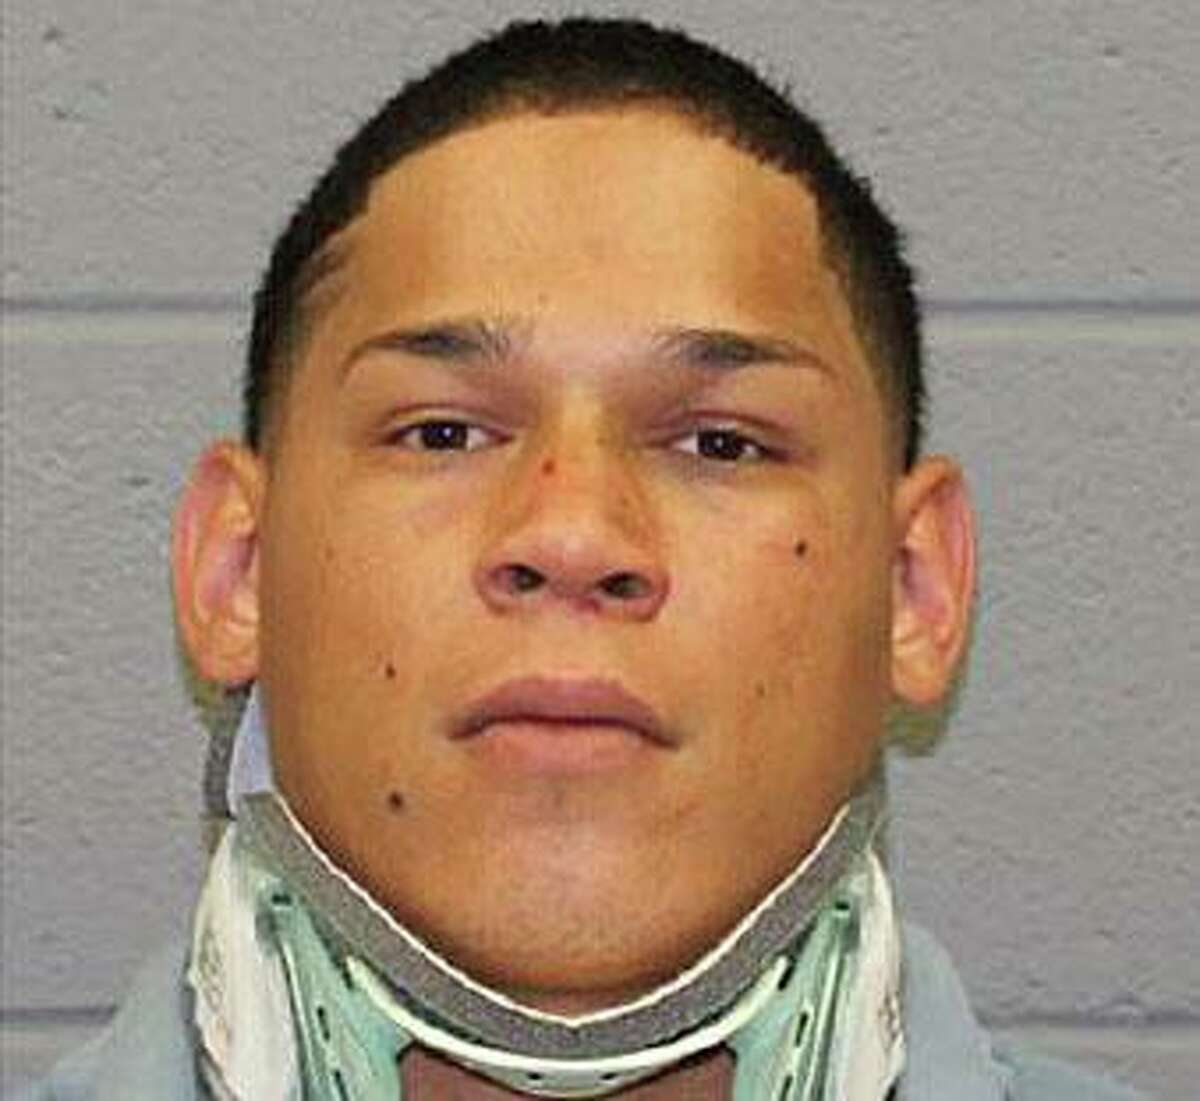 Yadeil Figueroa, 28, of Waterbury, Conn., was described by police as 5-foot-7 and 150 pounds with black hair and brown eyes. The photo provided by police was taken on June 20, 2016.